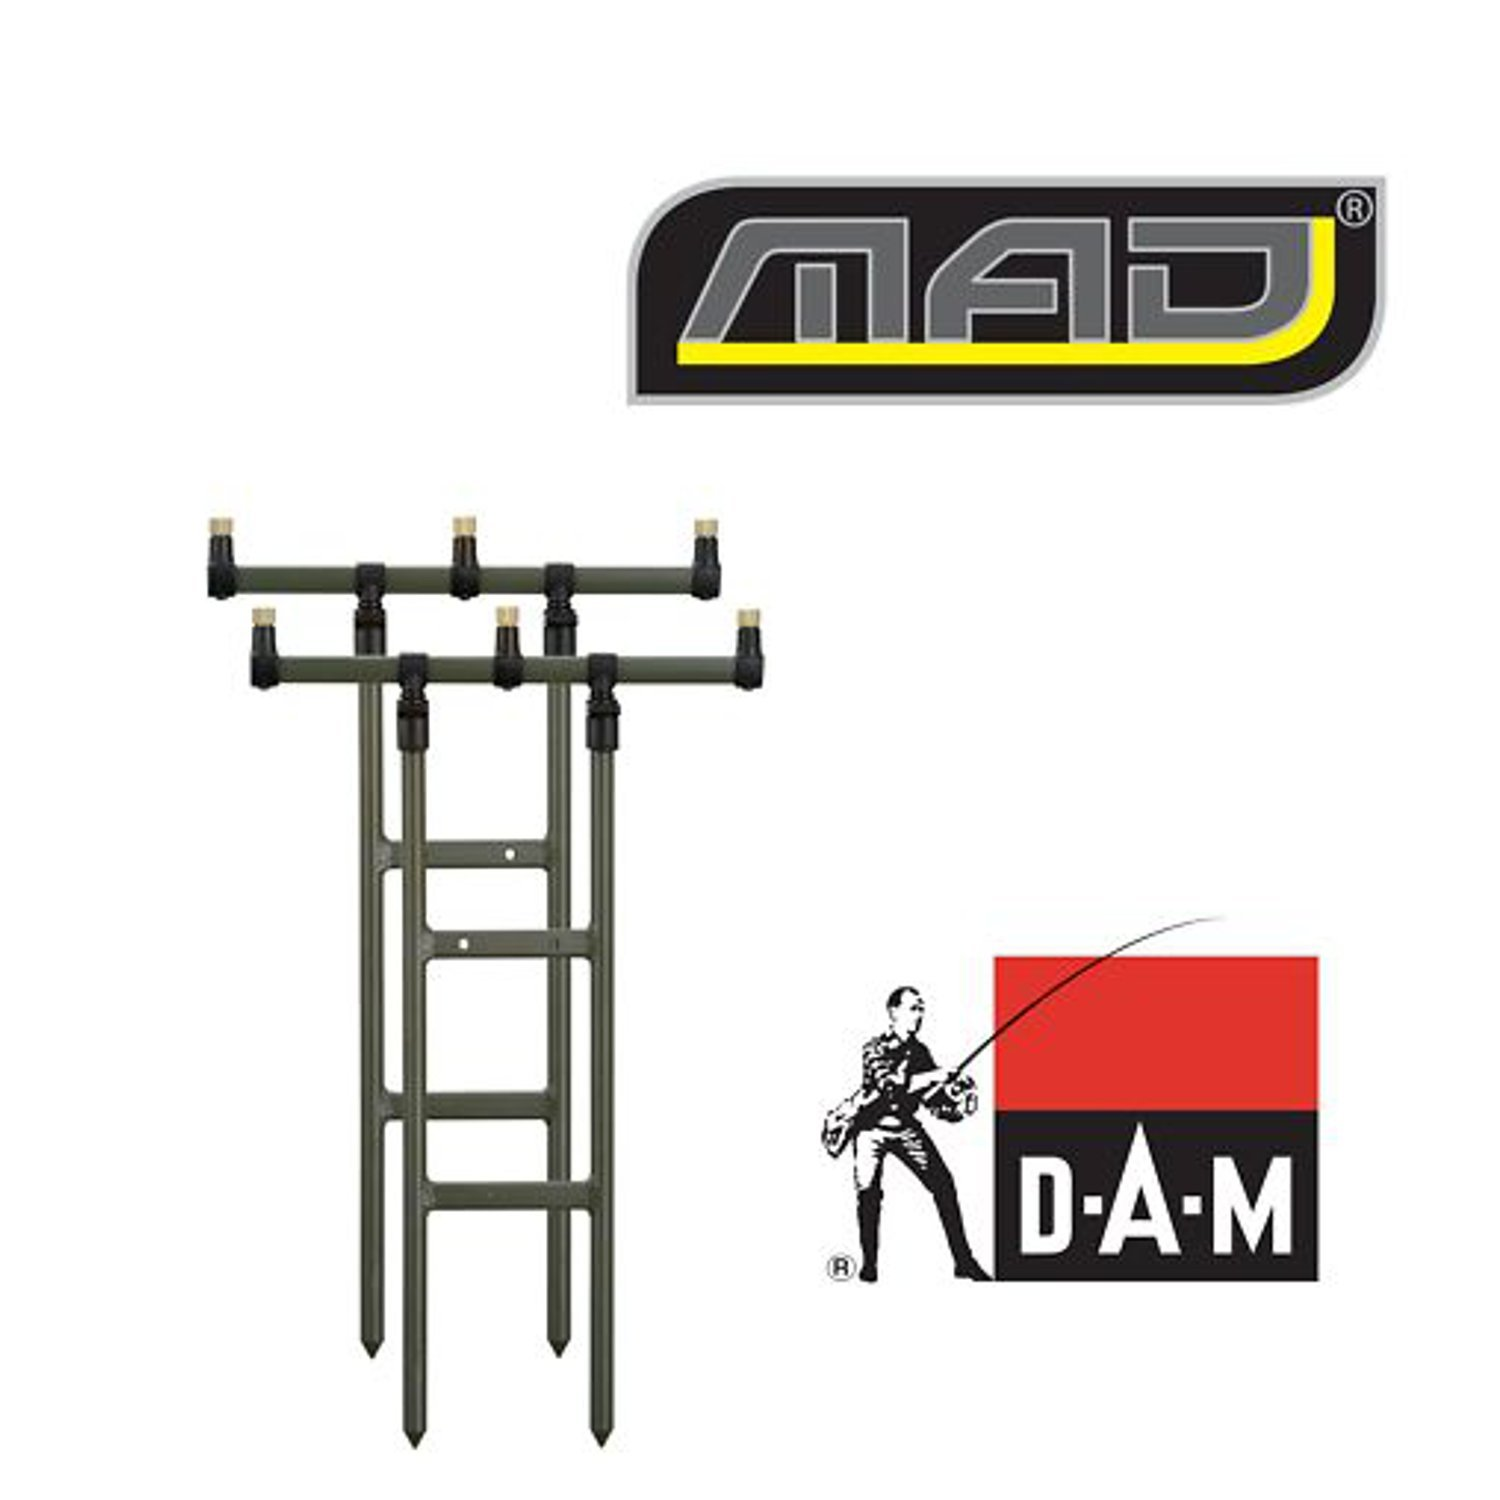 Goal Post von MAD DAM